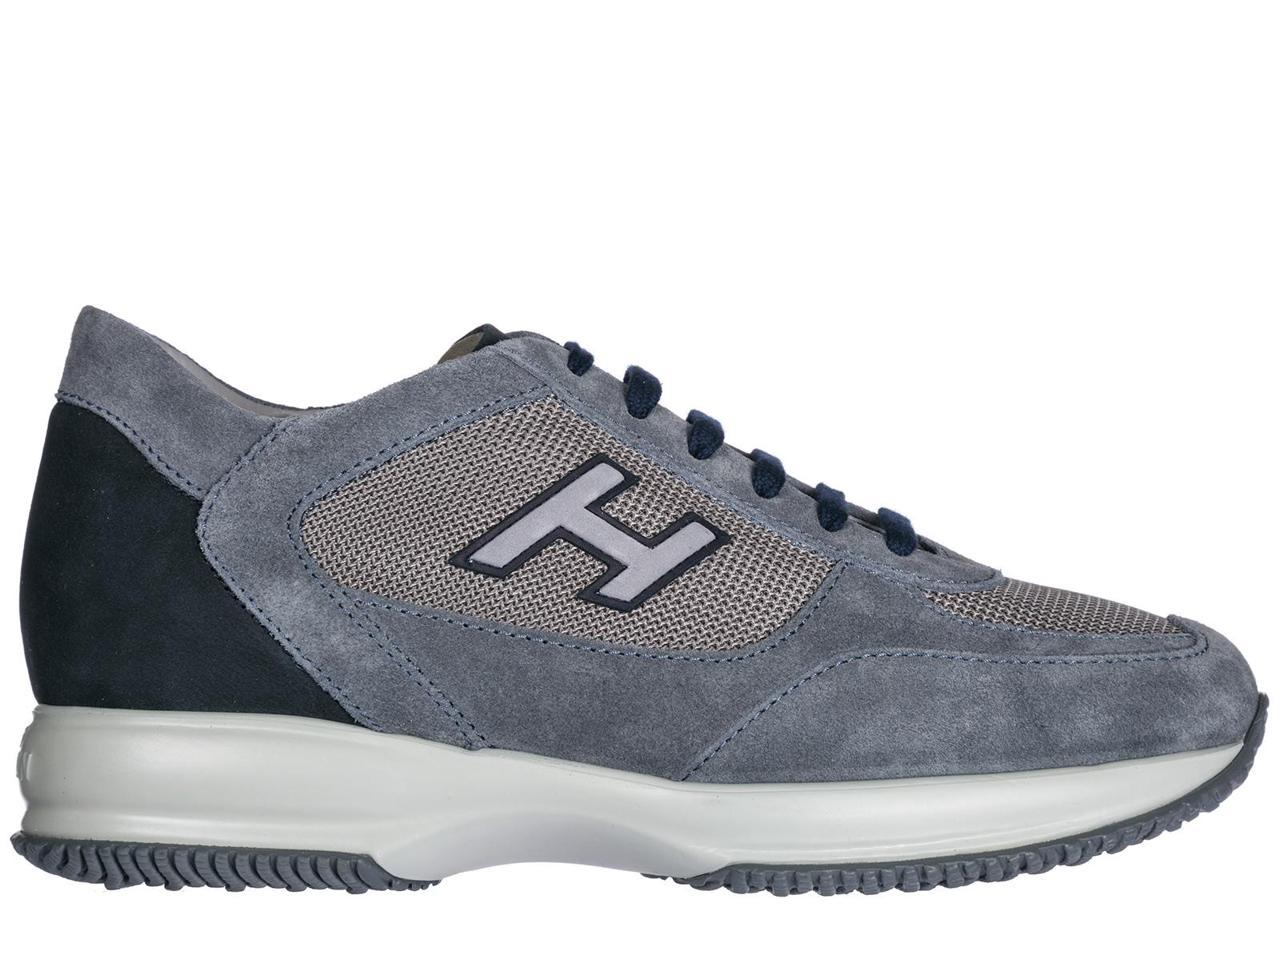 HOGAN MEN'S SHOES SUEDE TRAINERS SNEAKERS BLUE INTERACTIVE H FLOCK BLUE SNEAKERS a84577